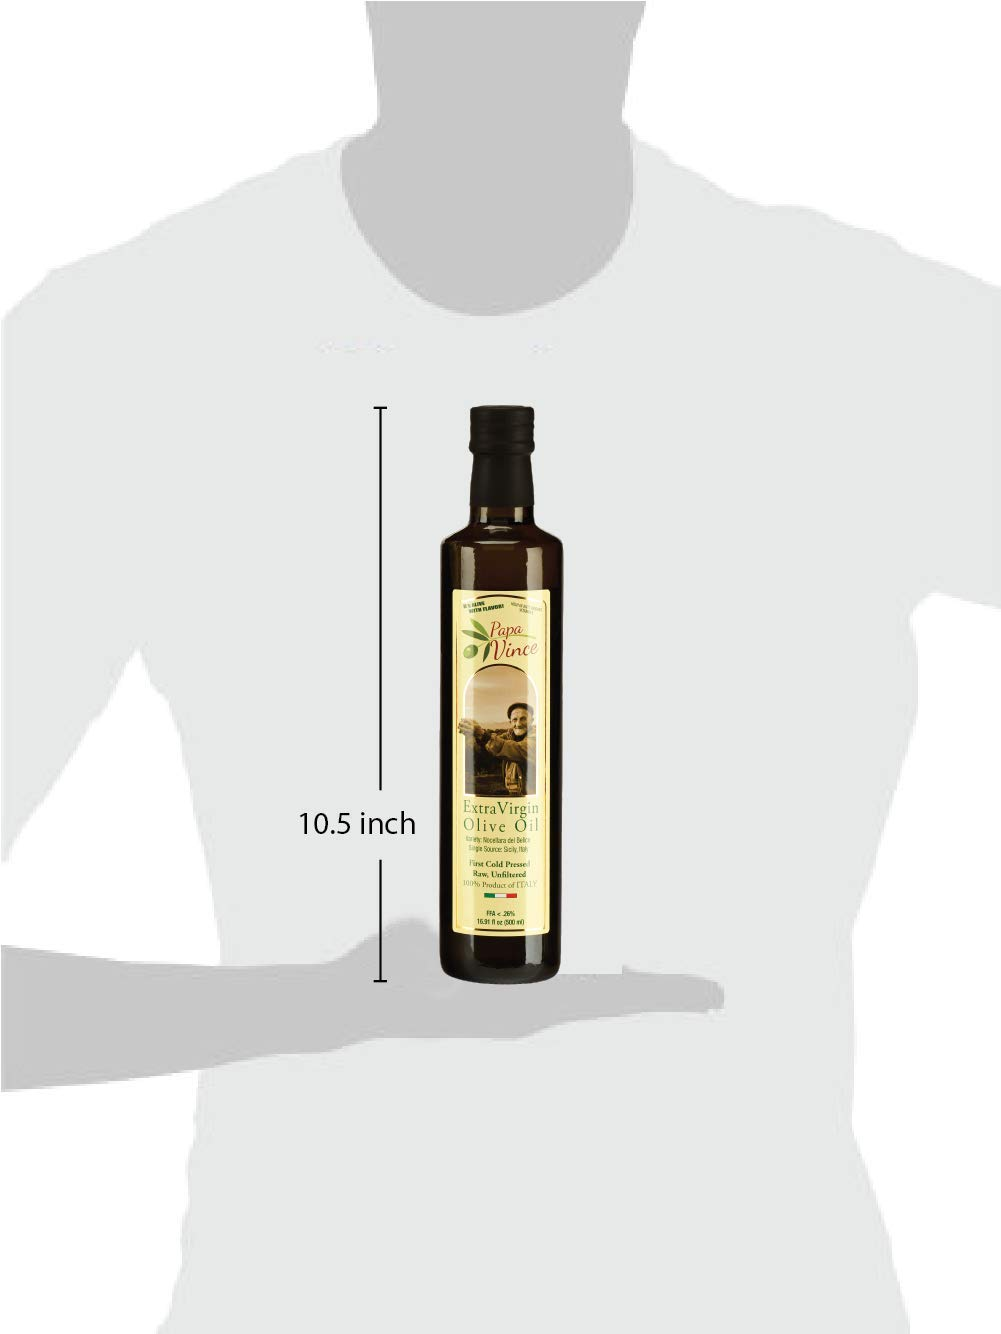 Papa Vince Olive Oil Gift - Extra Virgin First Cold Pressed from our family in Sicily, Italy, Unblended, Unfiltered, Unrefined, Robust, Rich in Antioxidant   Burlap bag   16.9 fl oz by Papa Vince (Image #4)